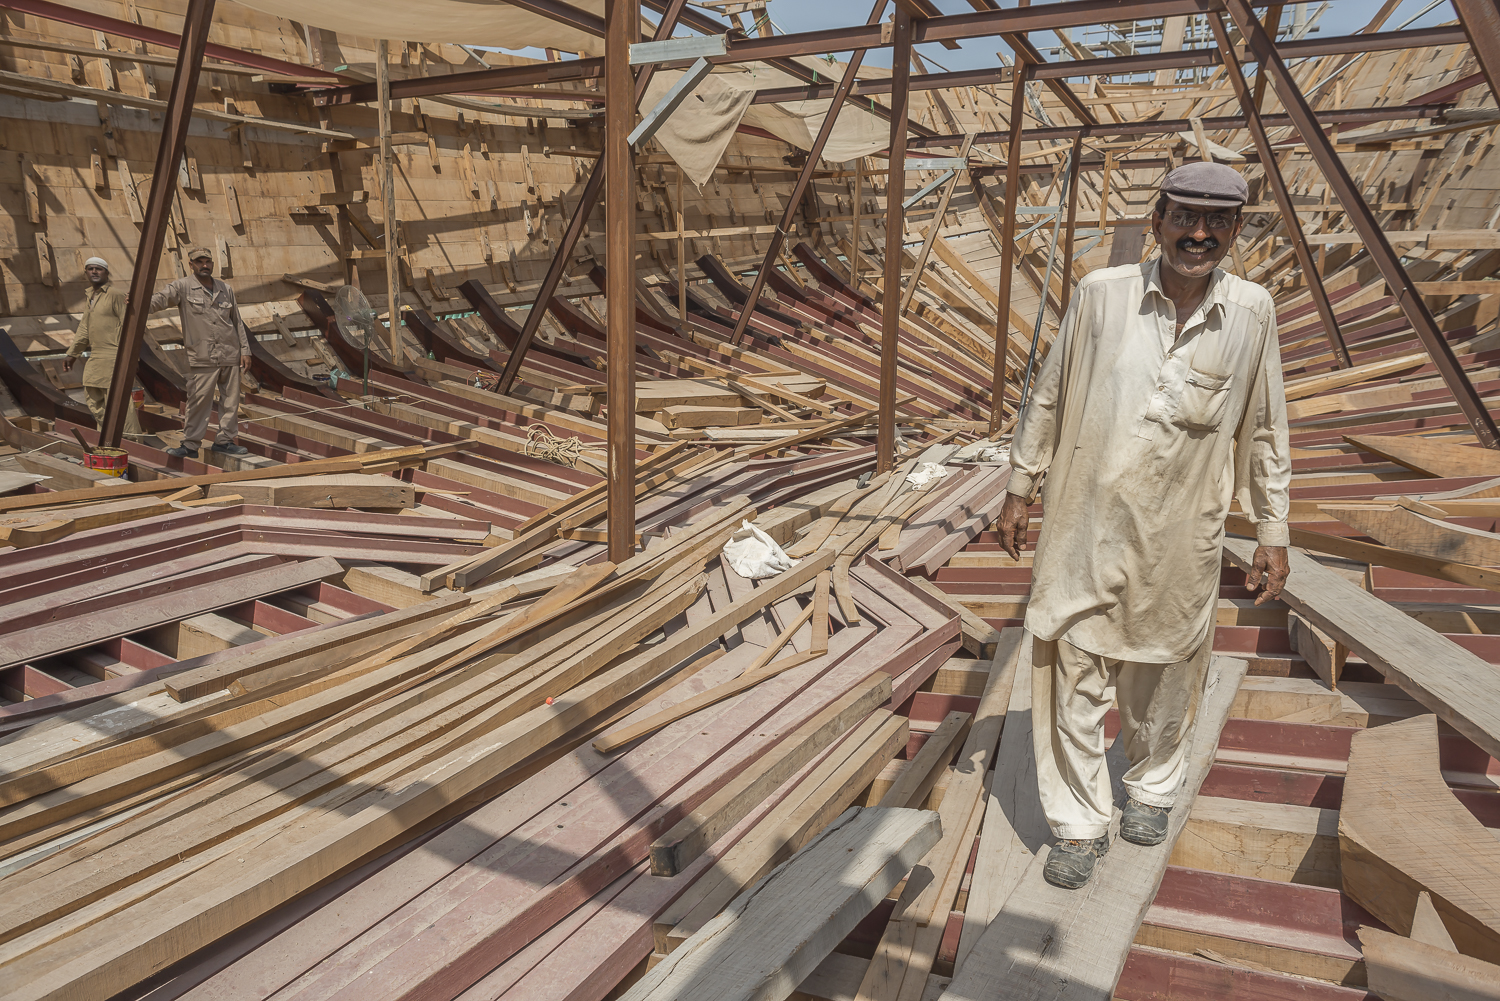 jo-kearney-dhows-building-dubai-migrant-worker-travel-photography-video-worker.jpg